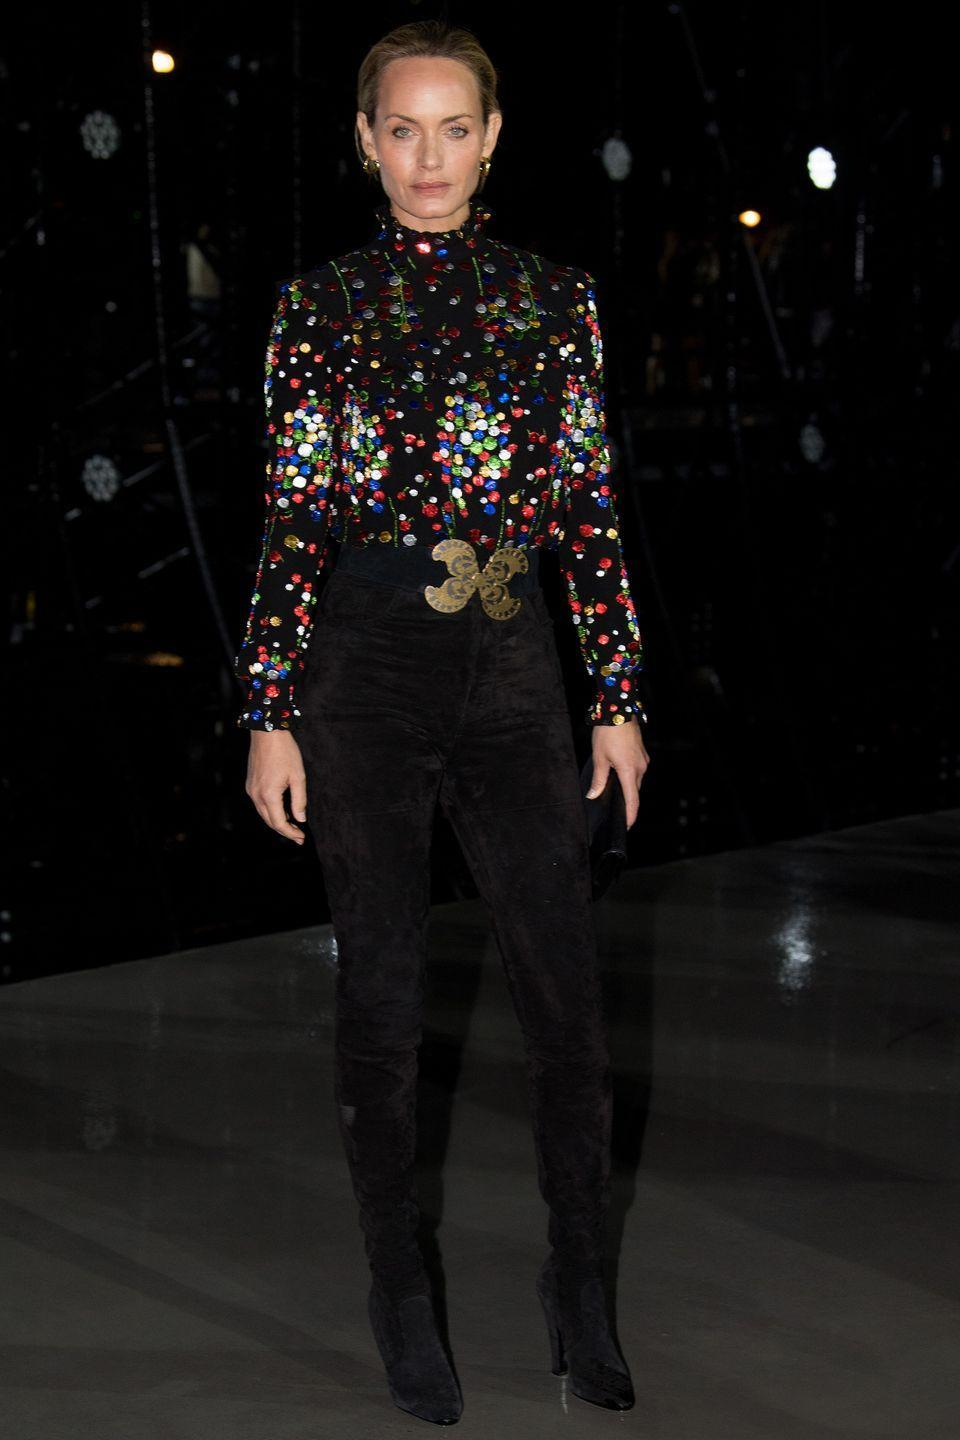 <p><strong>28 September </strong></p><p>Amber Valletta dressed in a rainbow metallic top for the Saint Laurent show at Paris Fashion Week.</p>